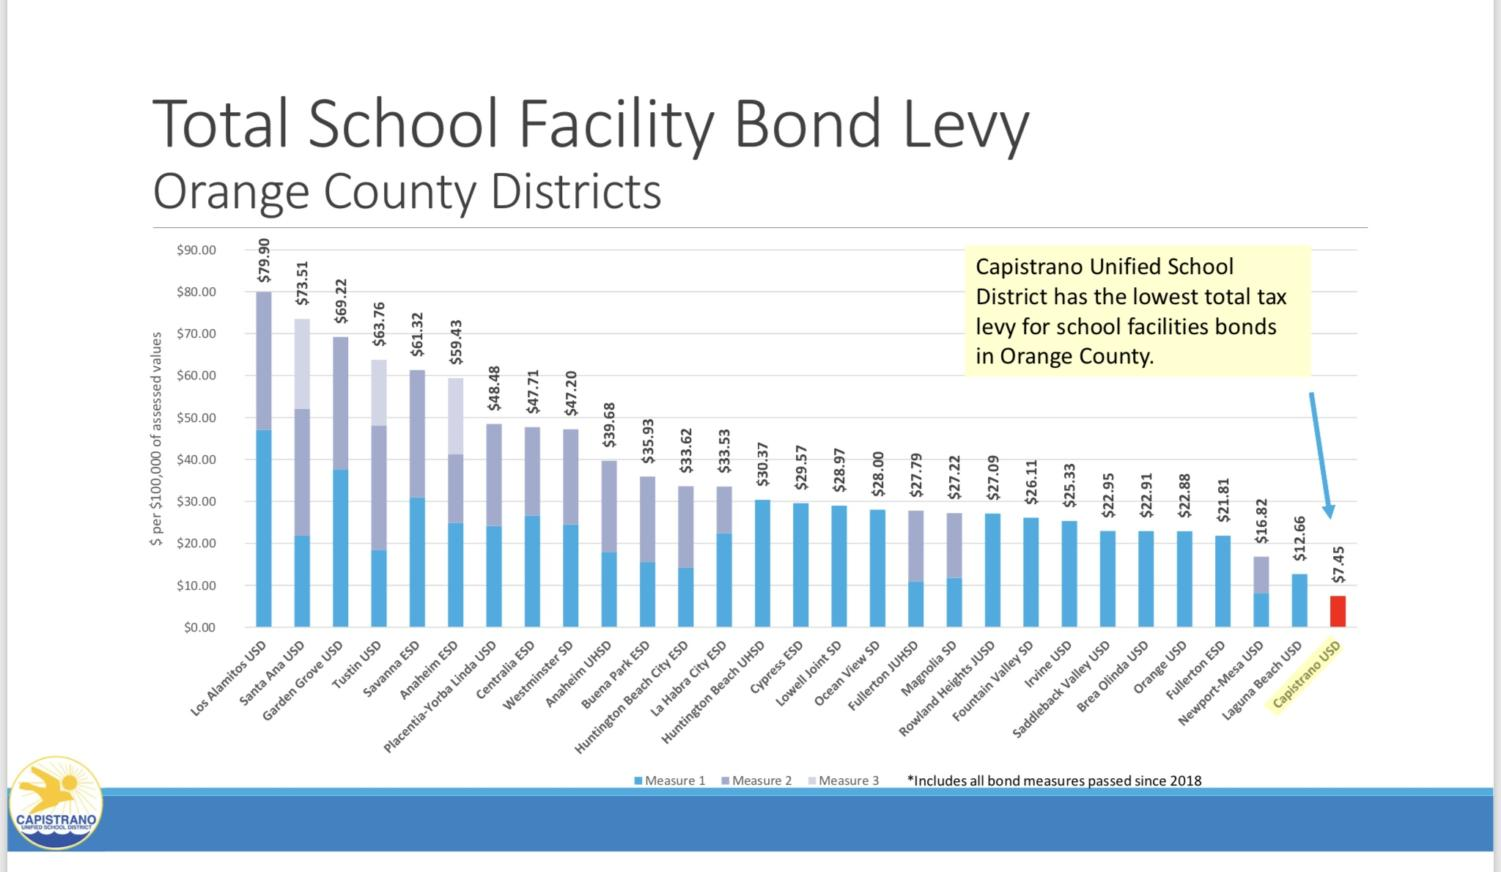 This chart demonstrates how Capistrano Unified School District has had the lowest tax levy for school facilities improvements bonds through 2018. CUSD officials believe this trend can be turned around with the help of the new facilities improvement bonds that will be up for vote in the California primary elections in March